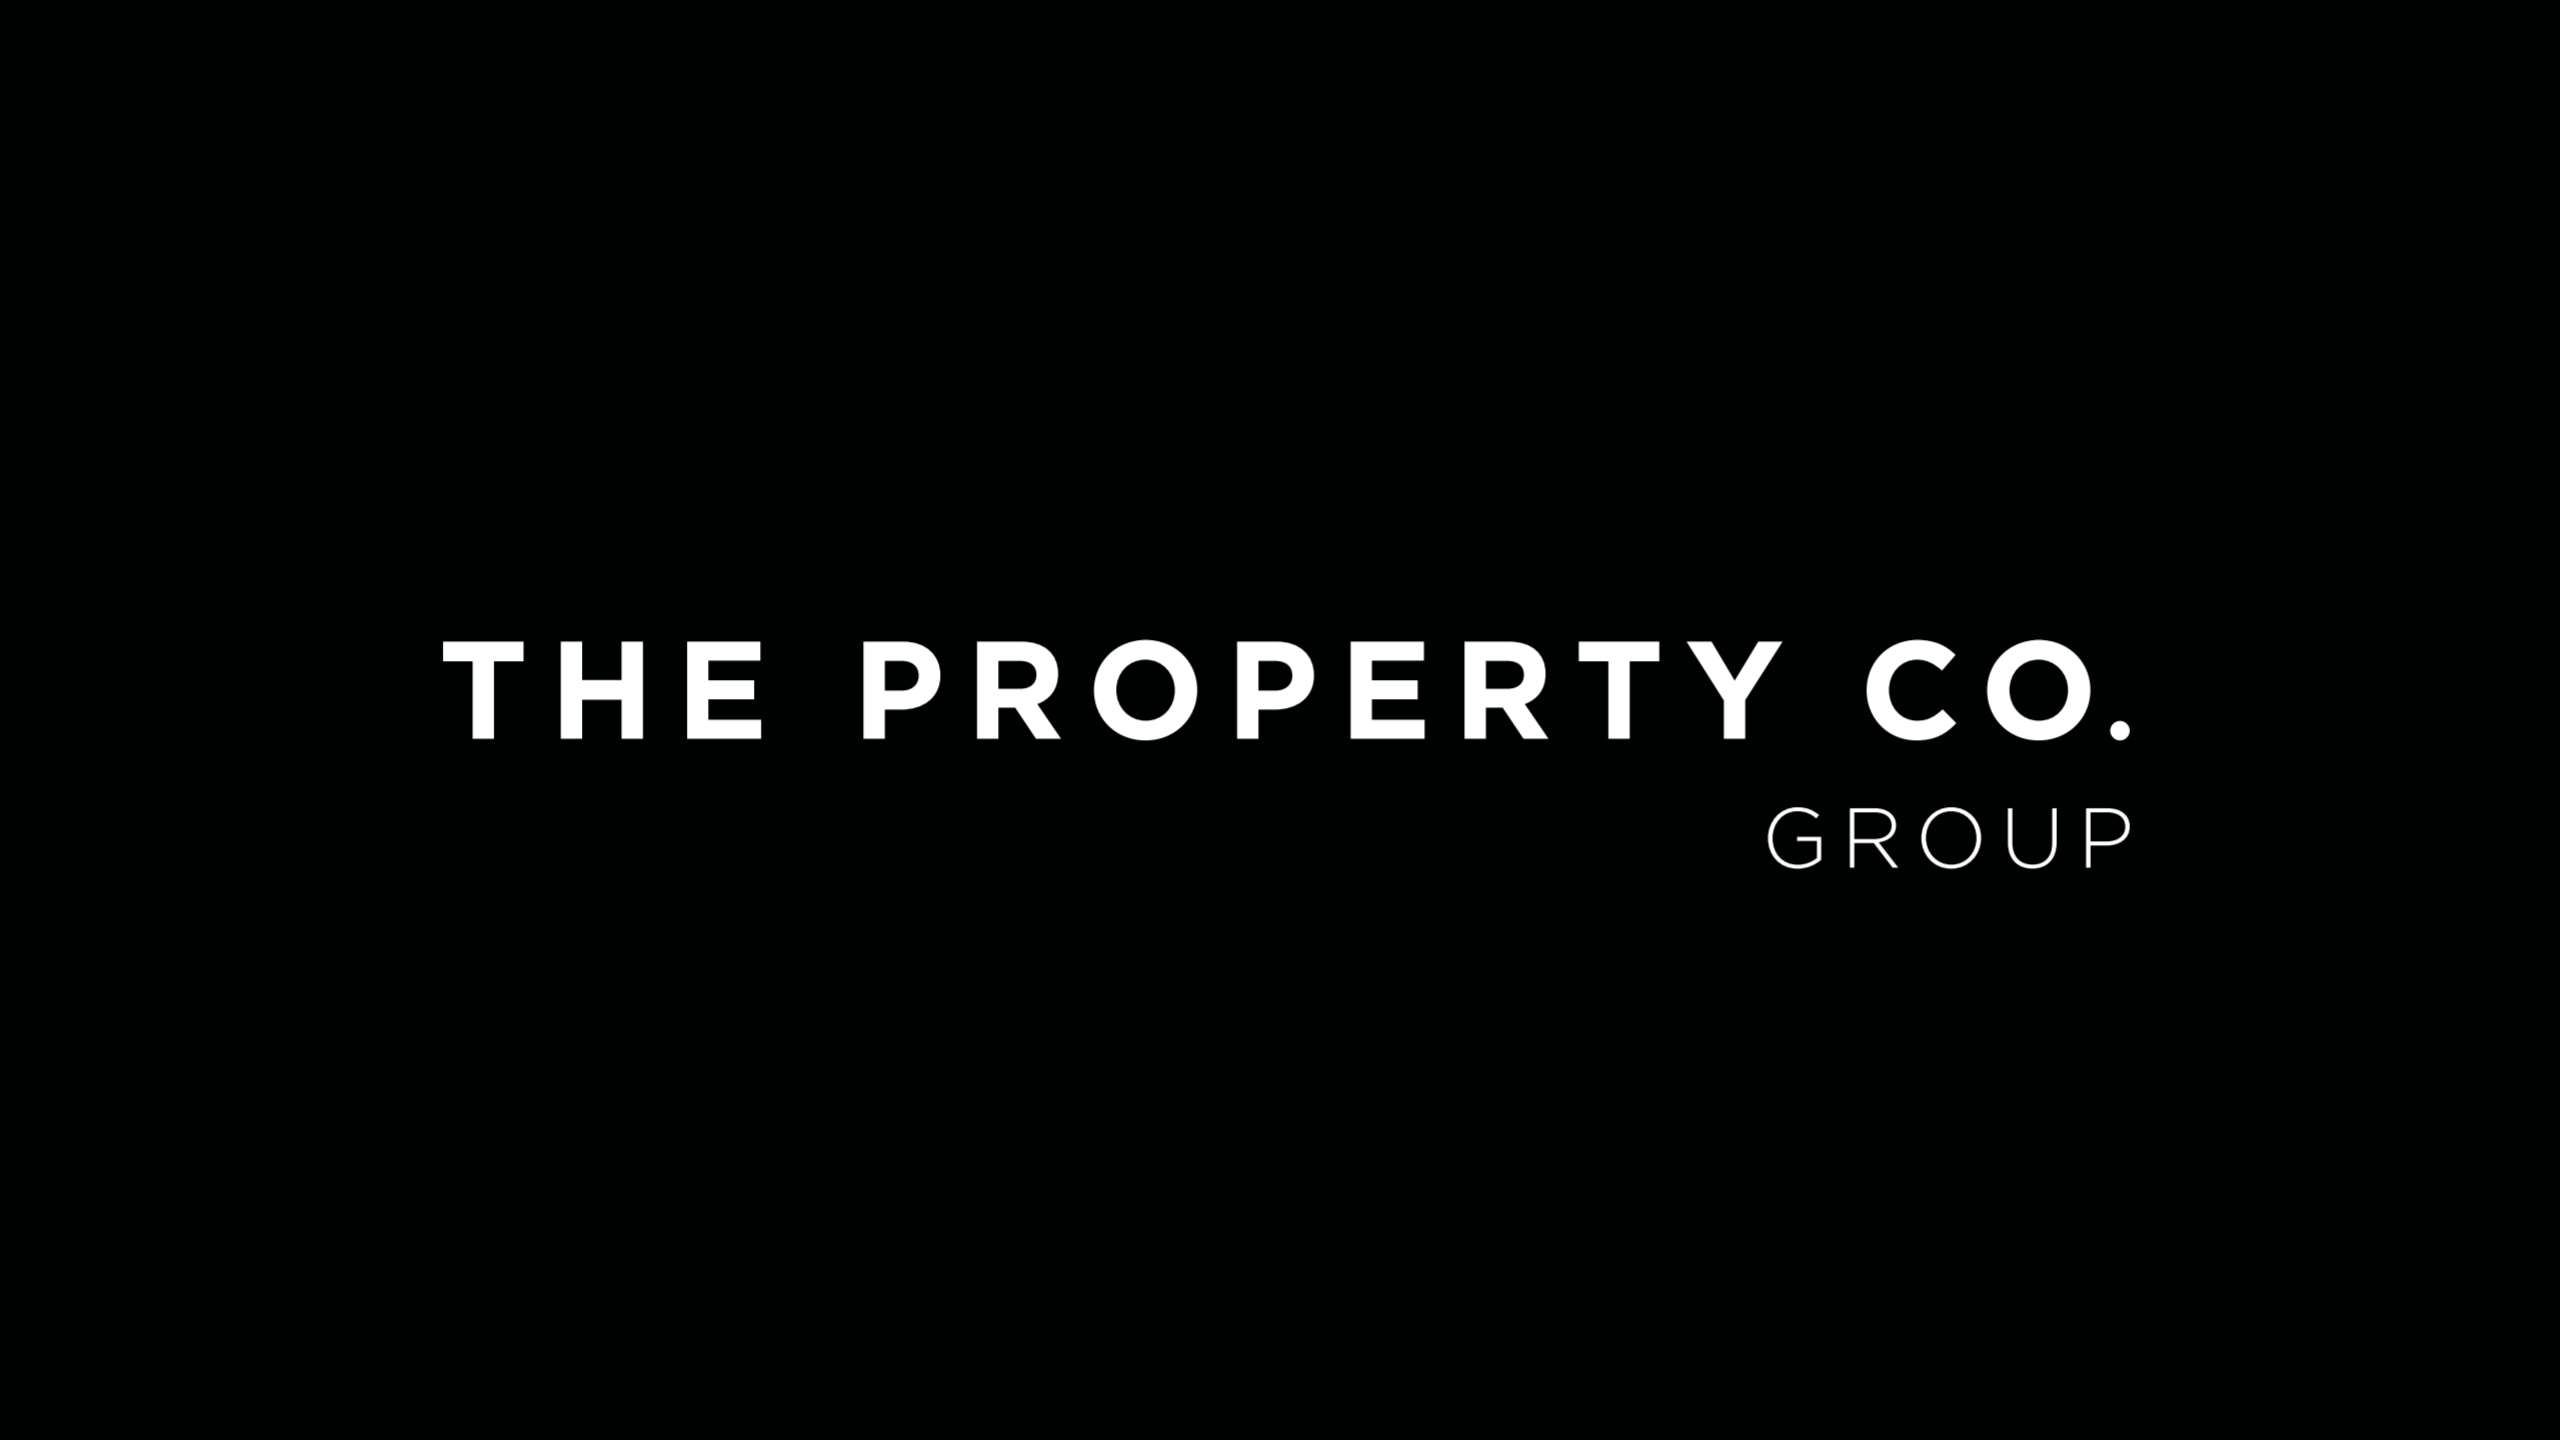 The Property Co. Group